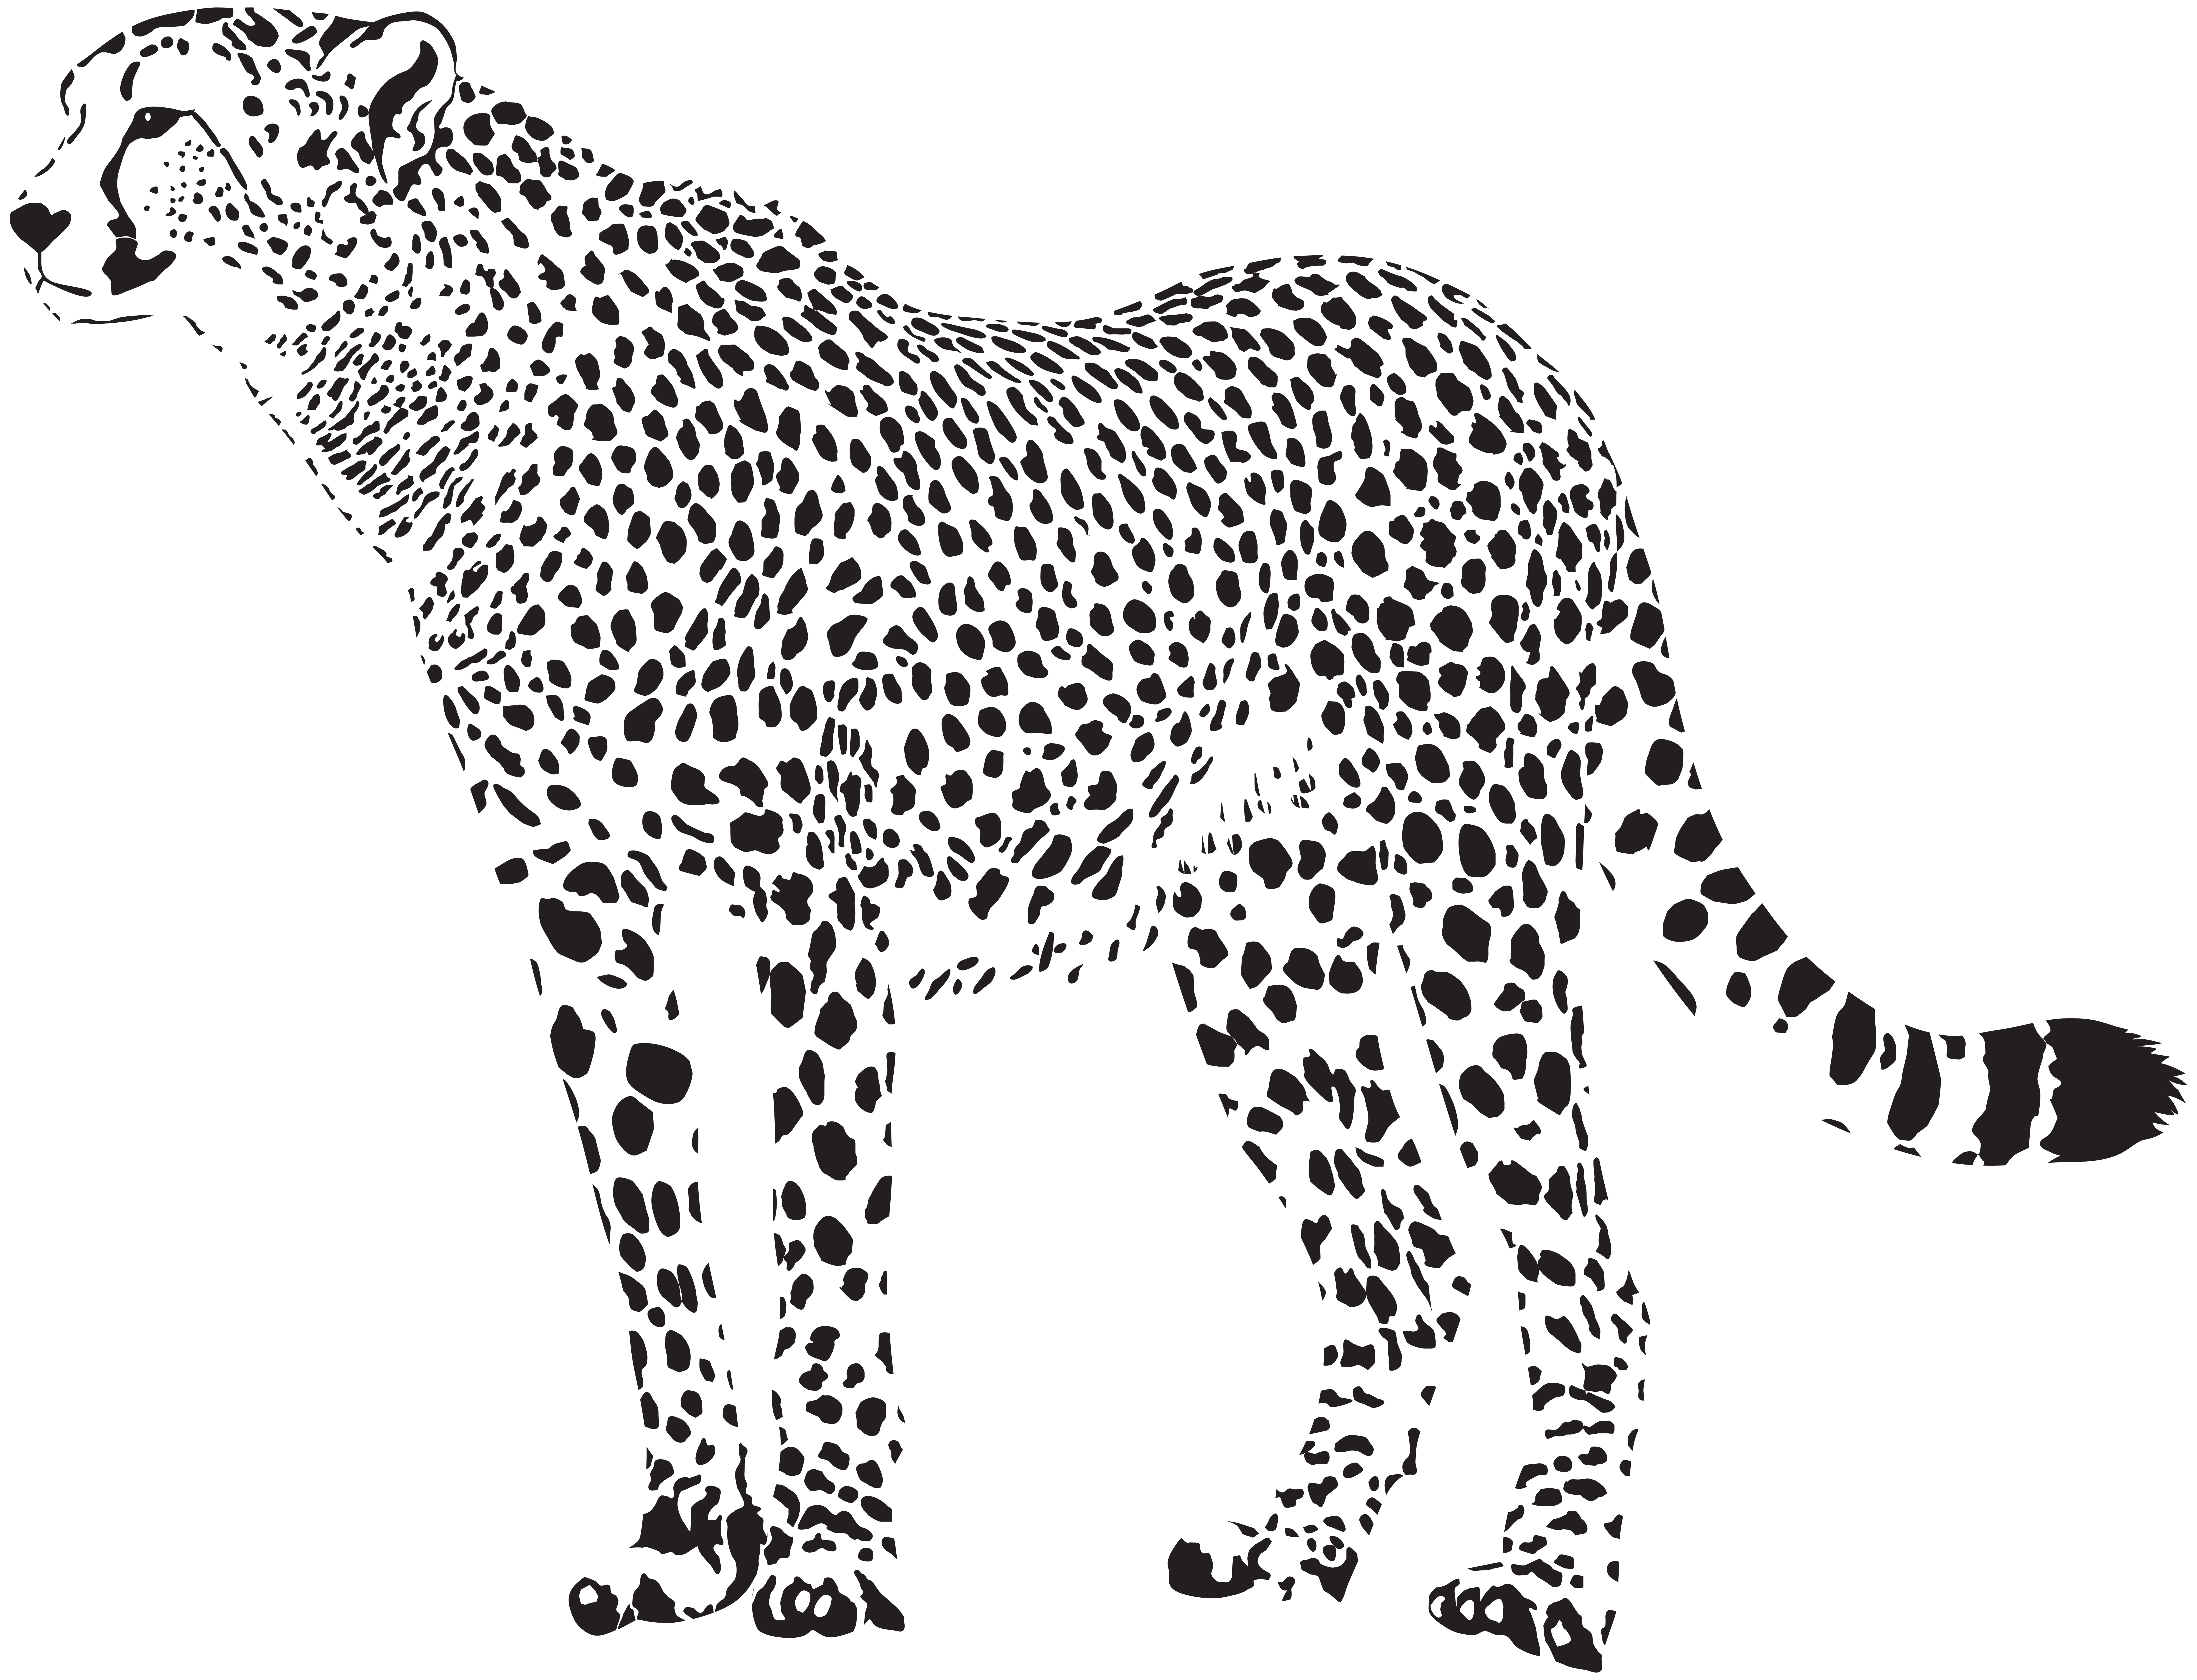 graphic freeuse Cheetah clipart face. Silhouette png transparent clip.